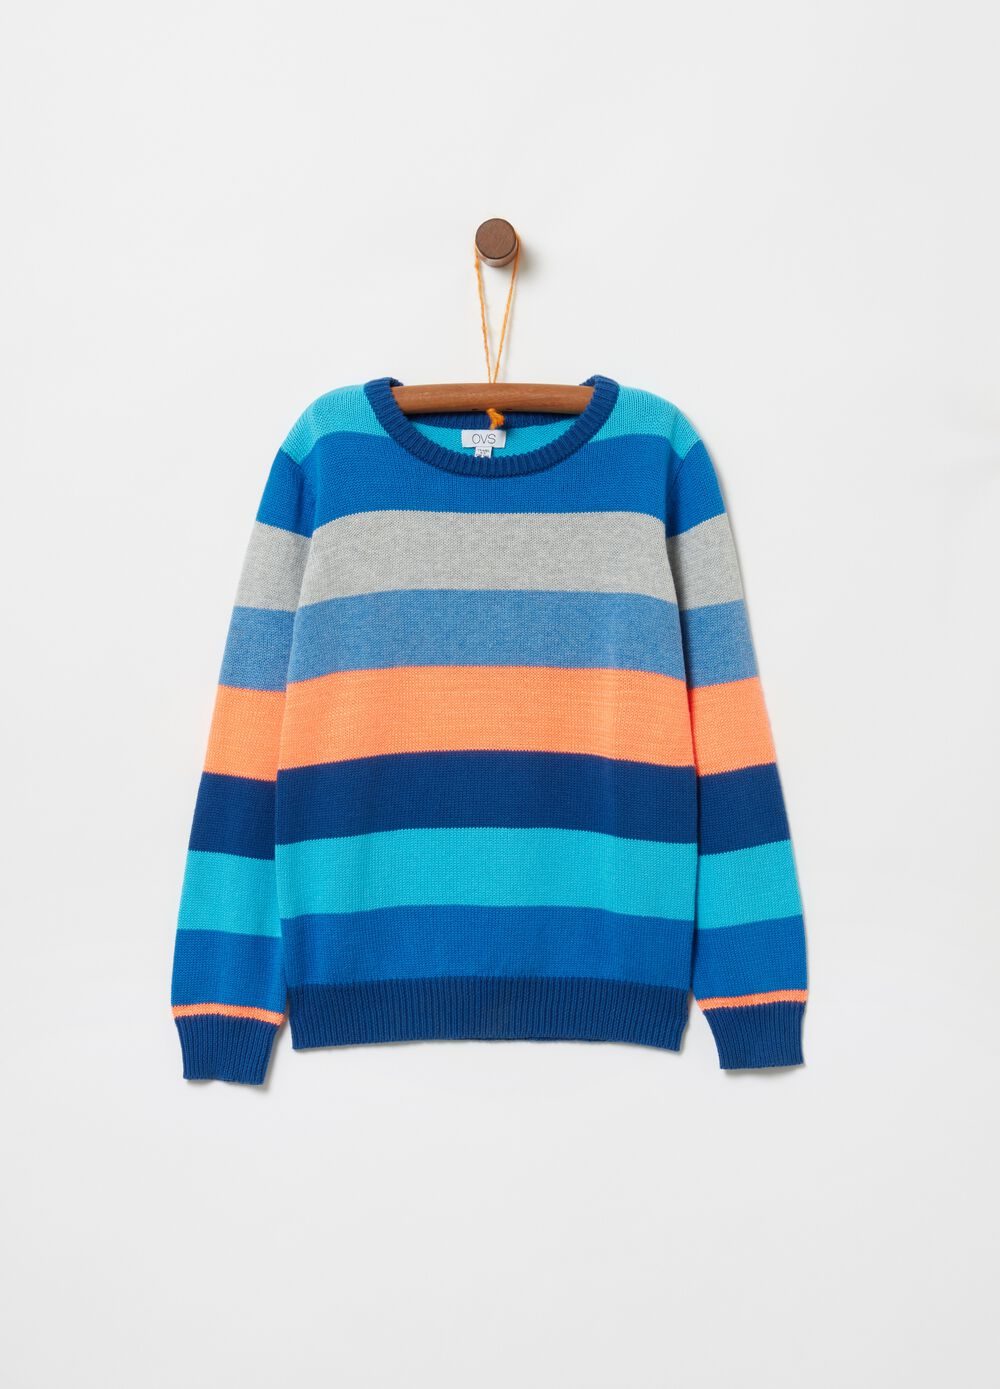 Crazy stripes knitted top with round neck